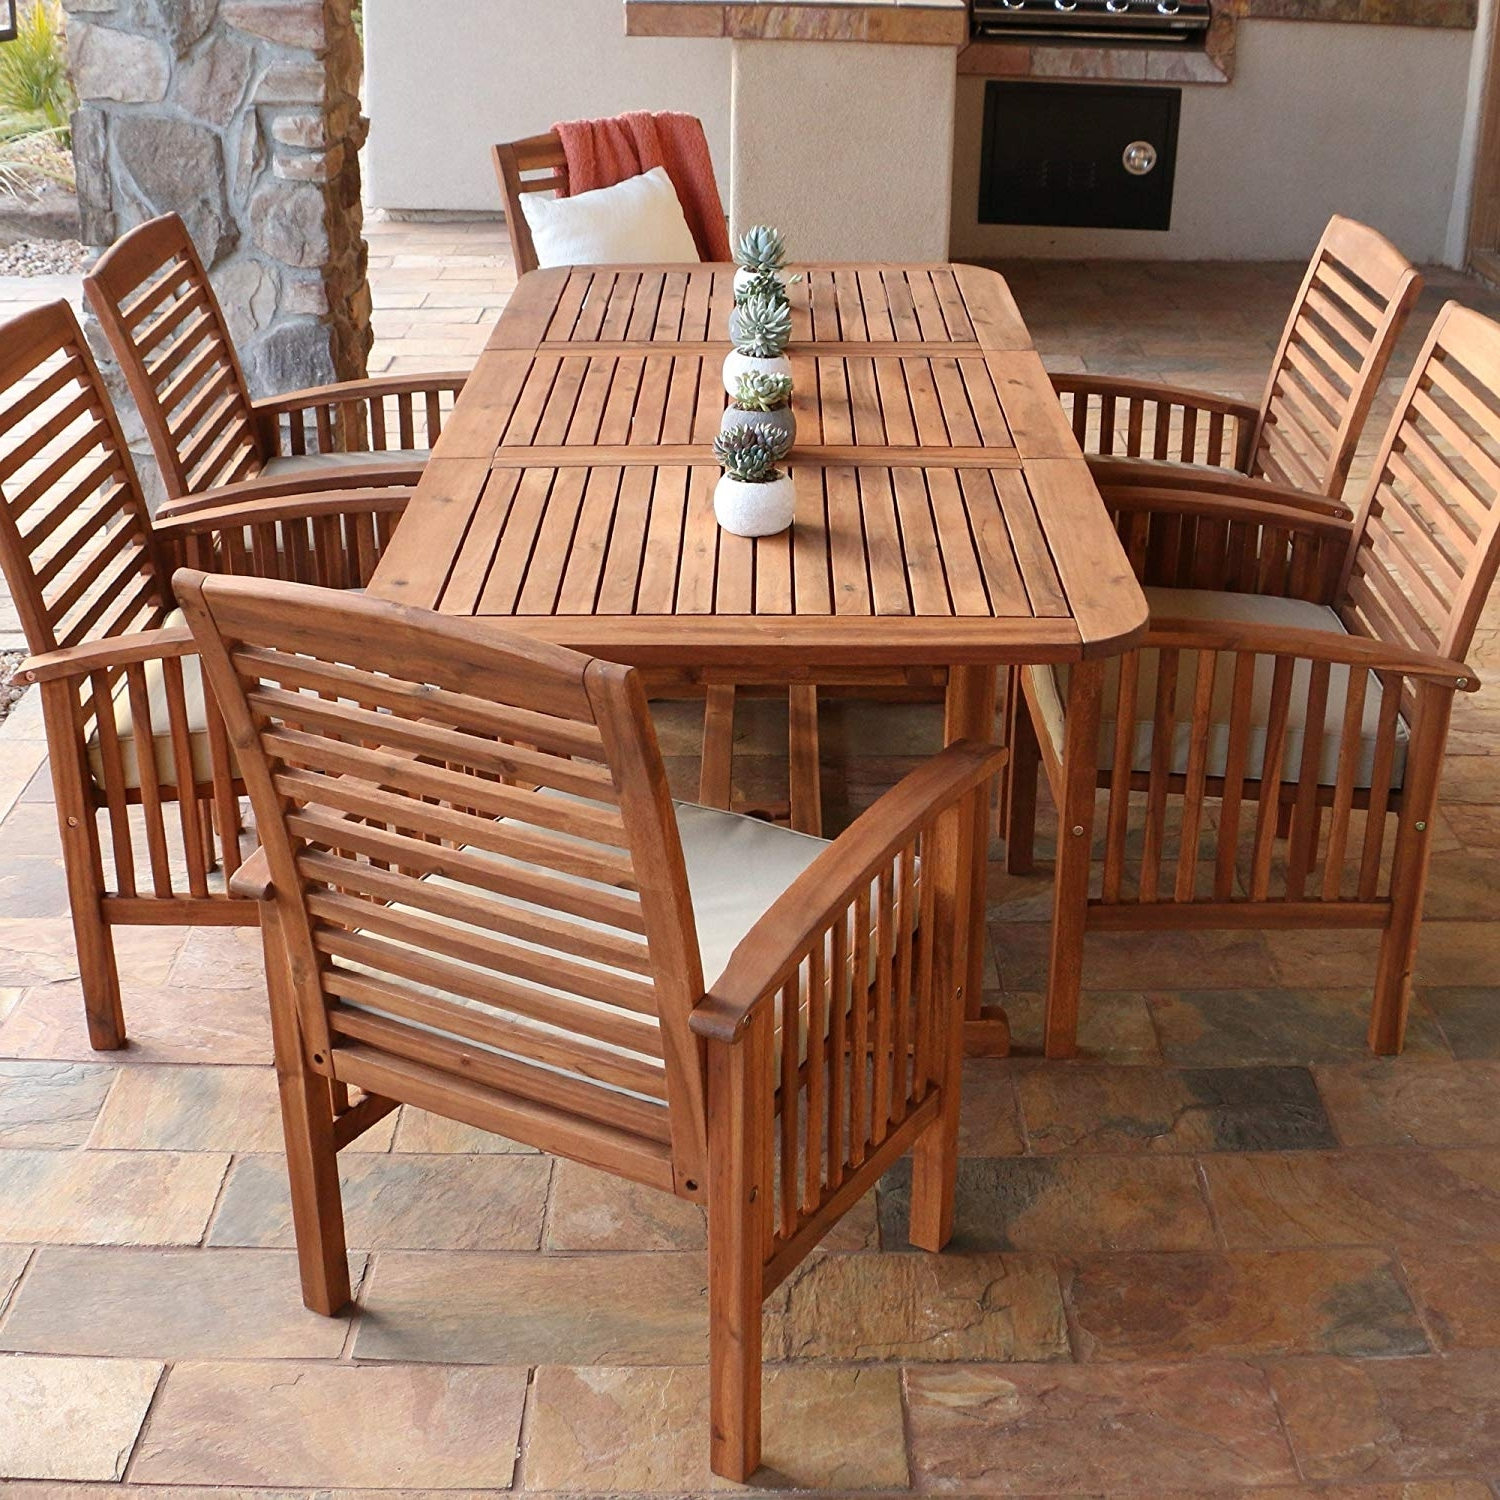 Outdoor Dining Table And Chairs Sets Pertaining To Well Liked Amazon: Walker Edison Solid Acacia Wood 7 Piece Patio Dining Set (View 16 of 25)